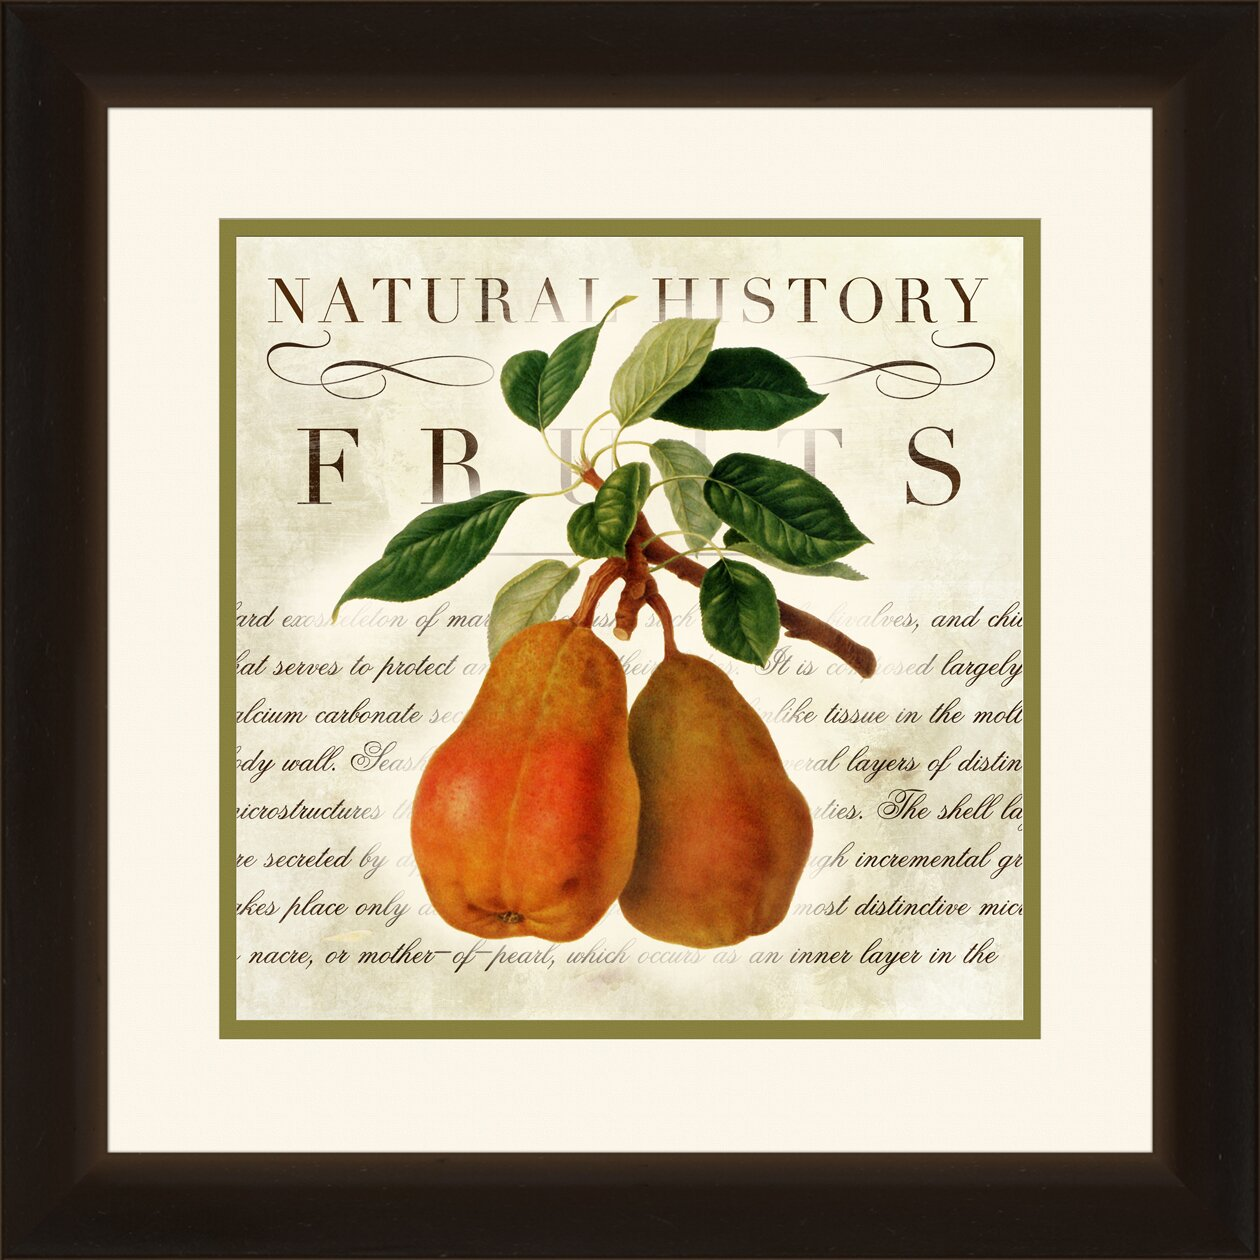 Ptm Images Natural History Fruits 2 Piece Framed Graphic